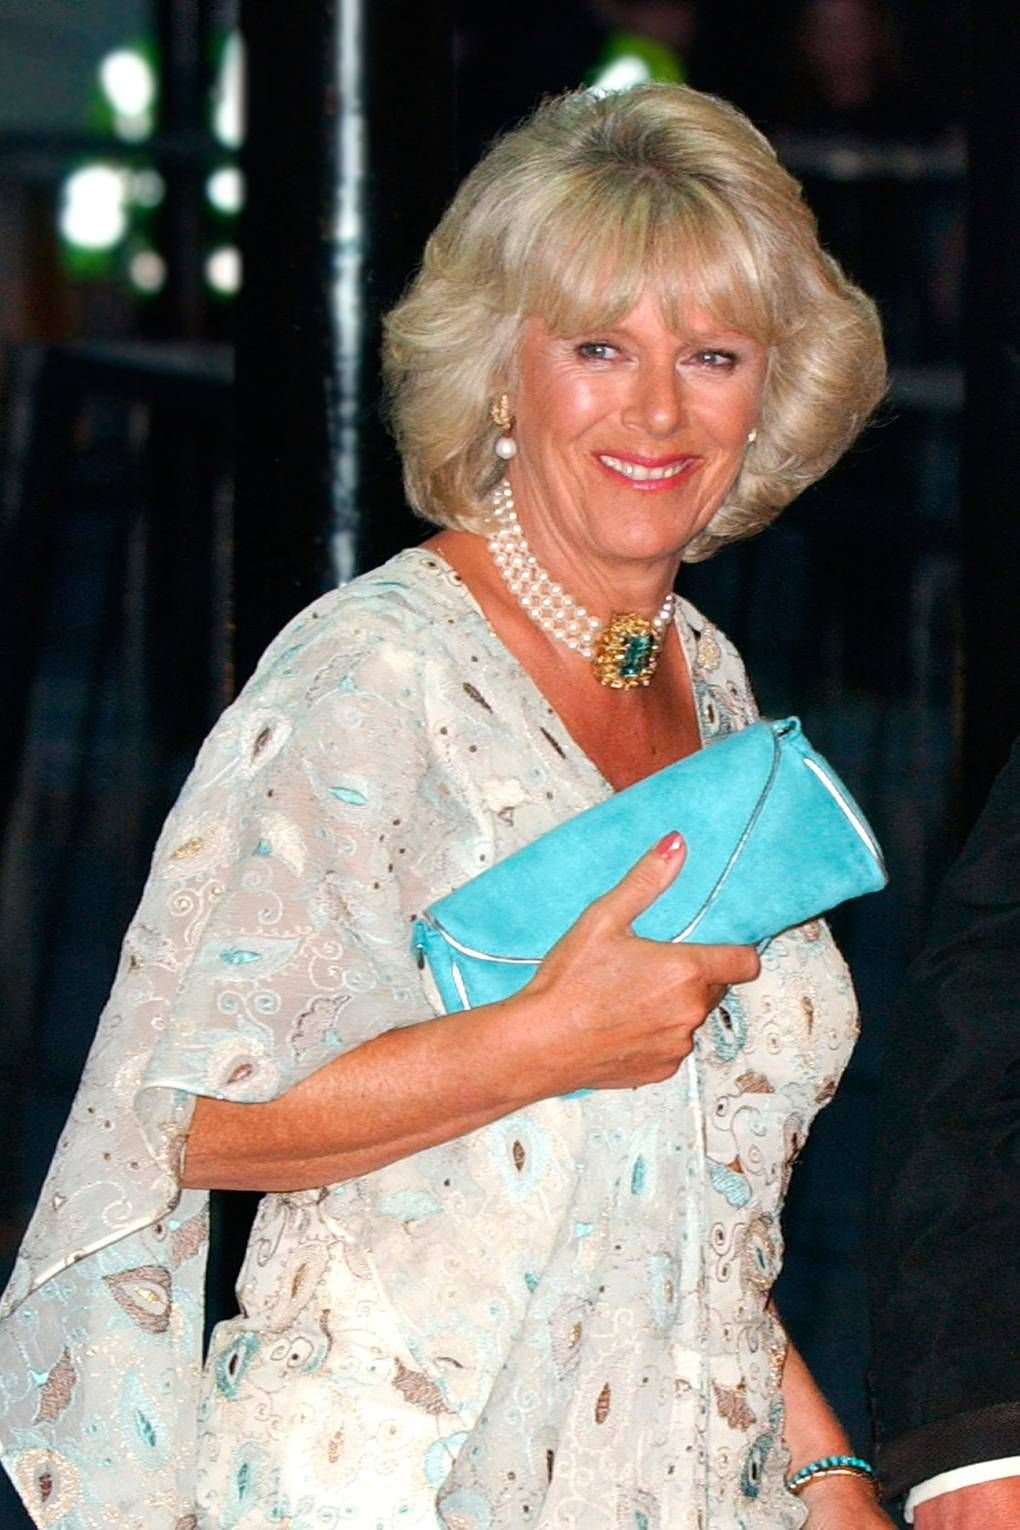 The Duchess of Cornwall proves she's the queen of style